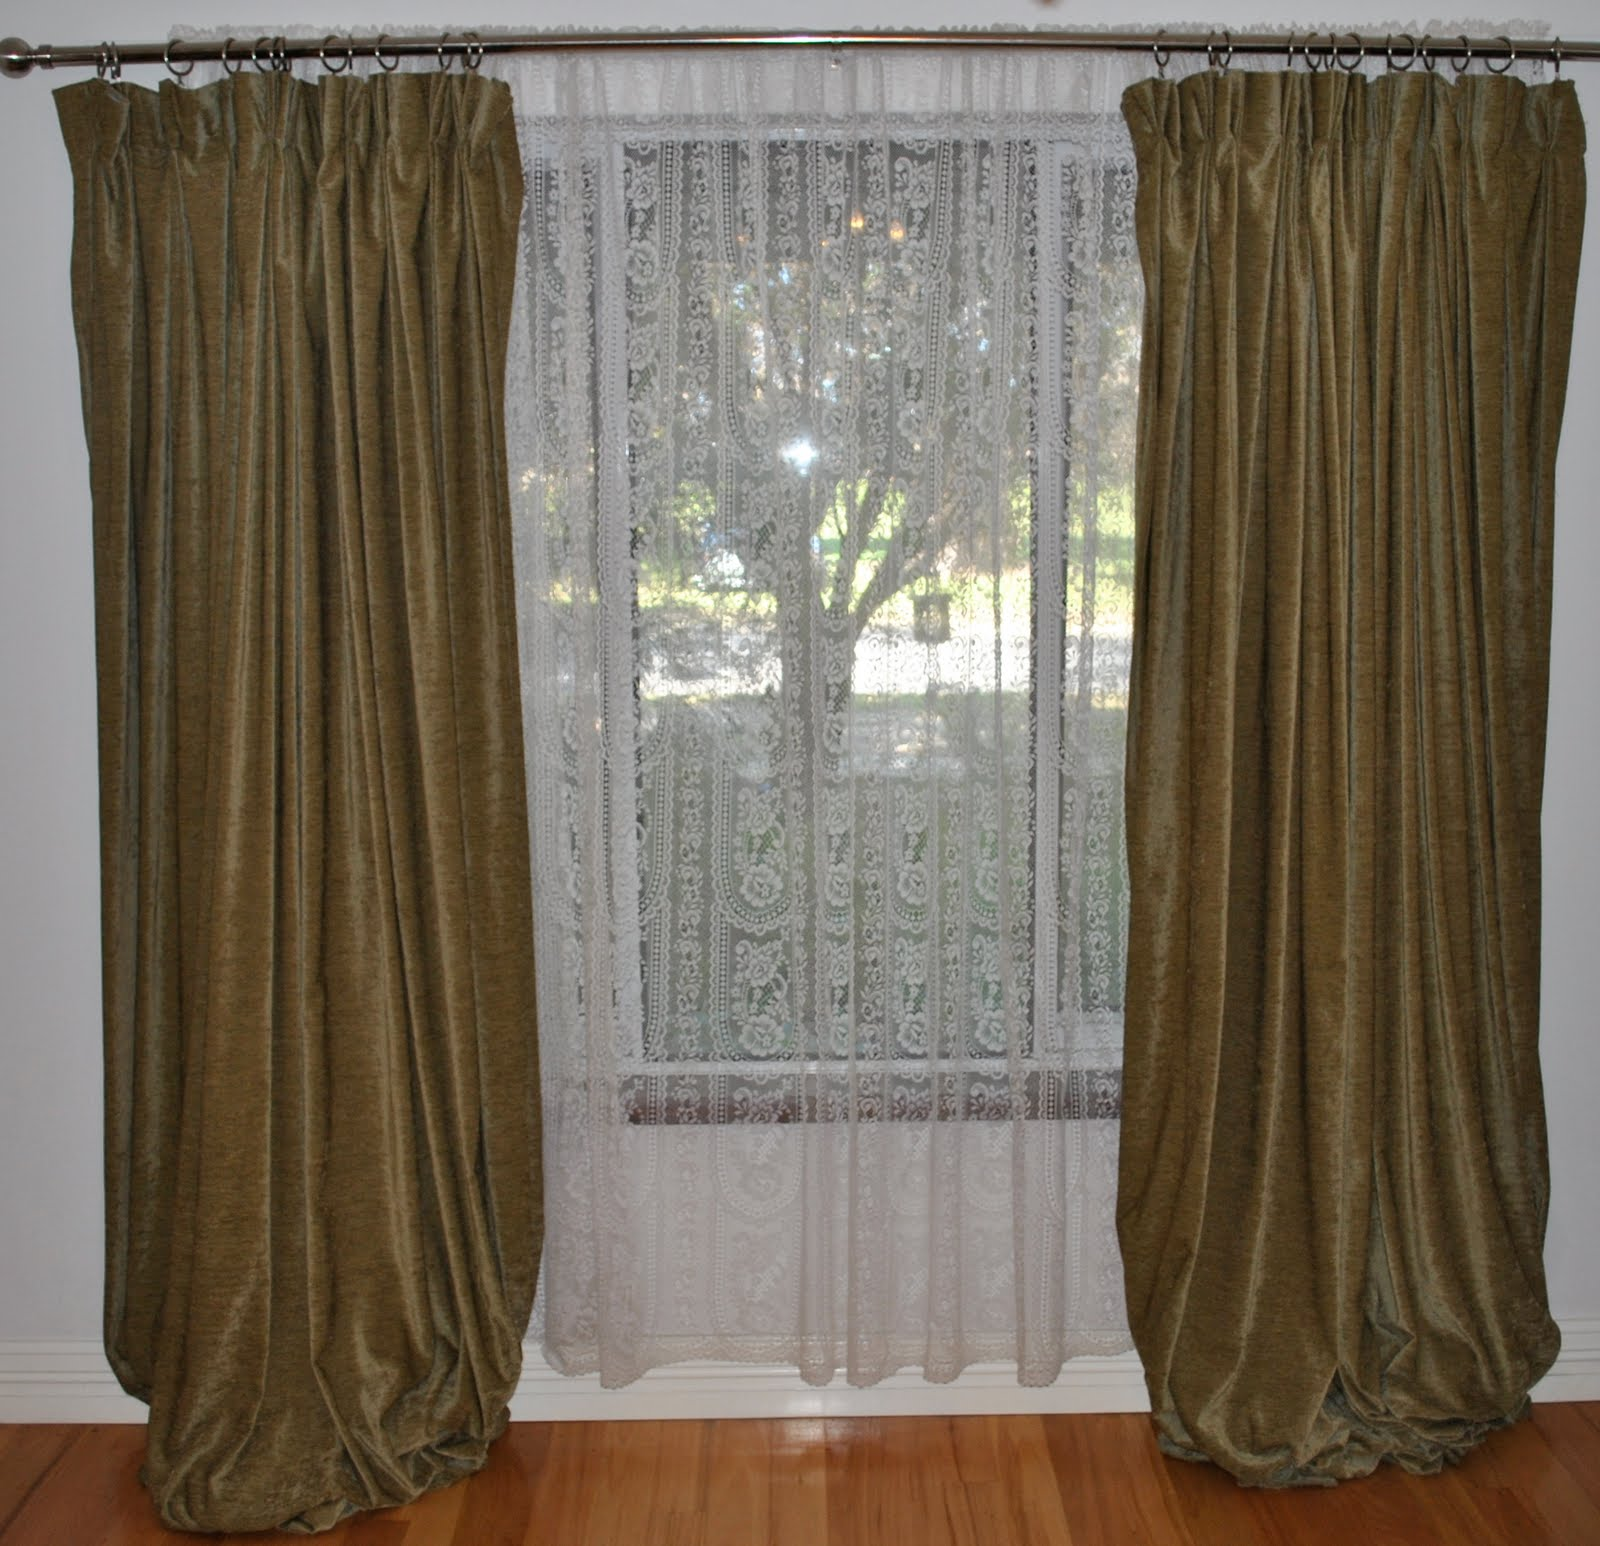 Bedroom curtains Curtain designs for bedroom